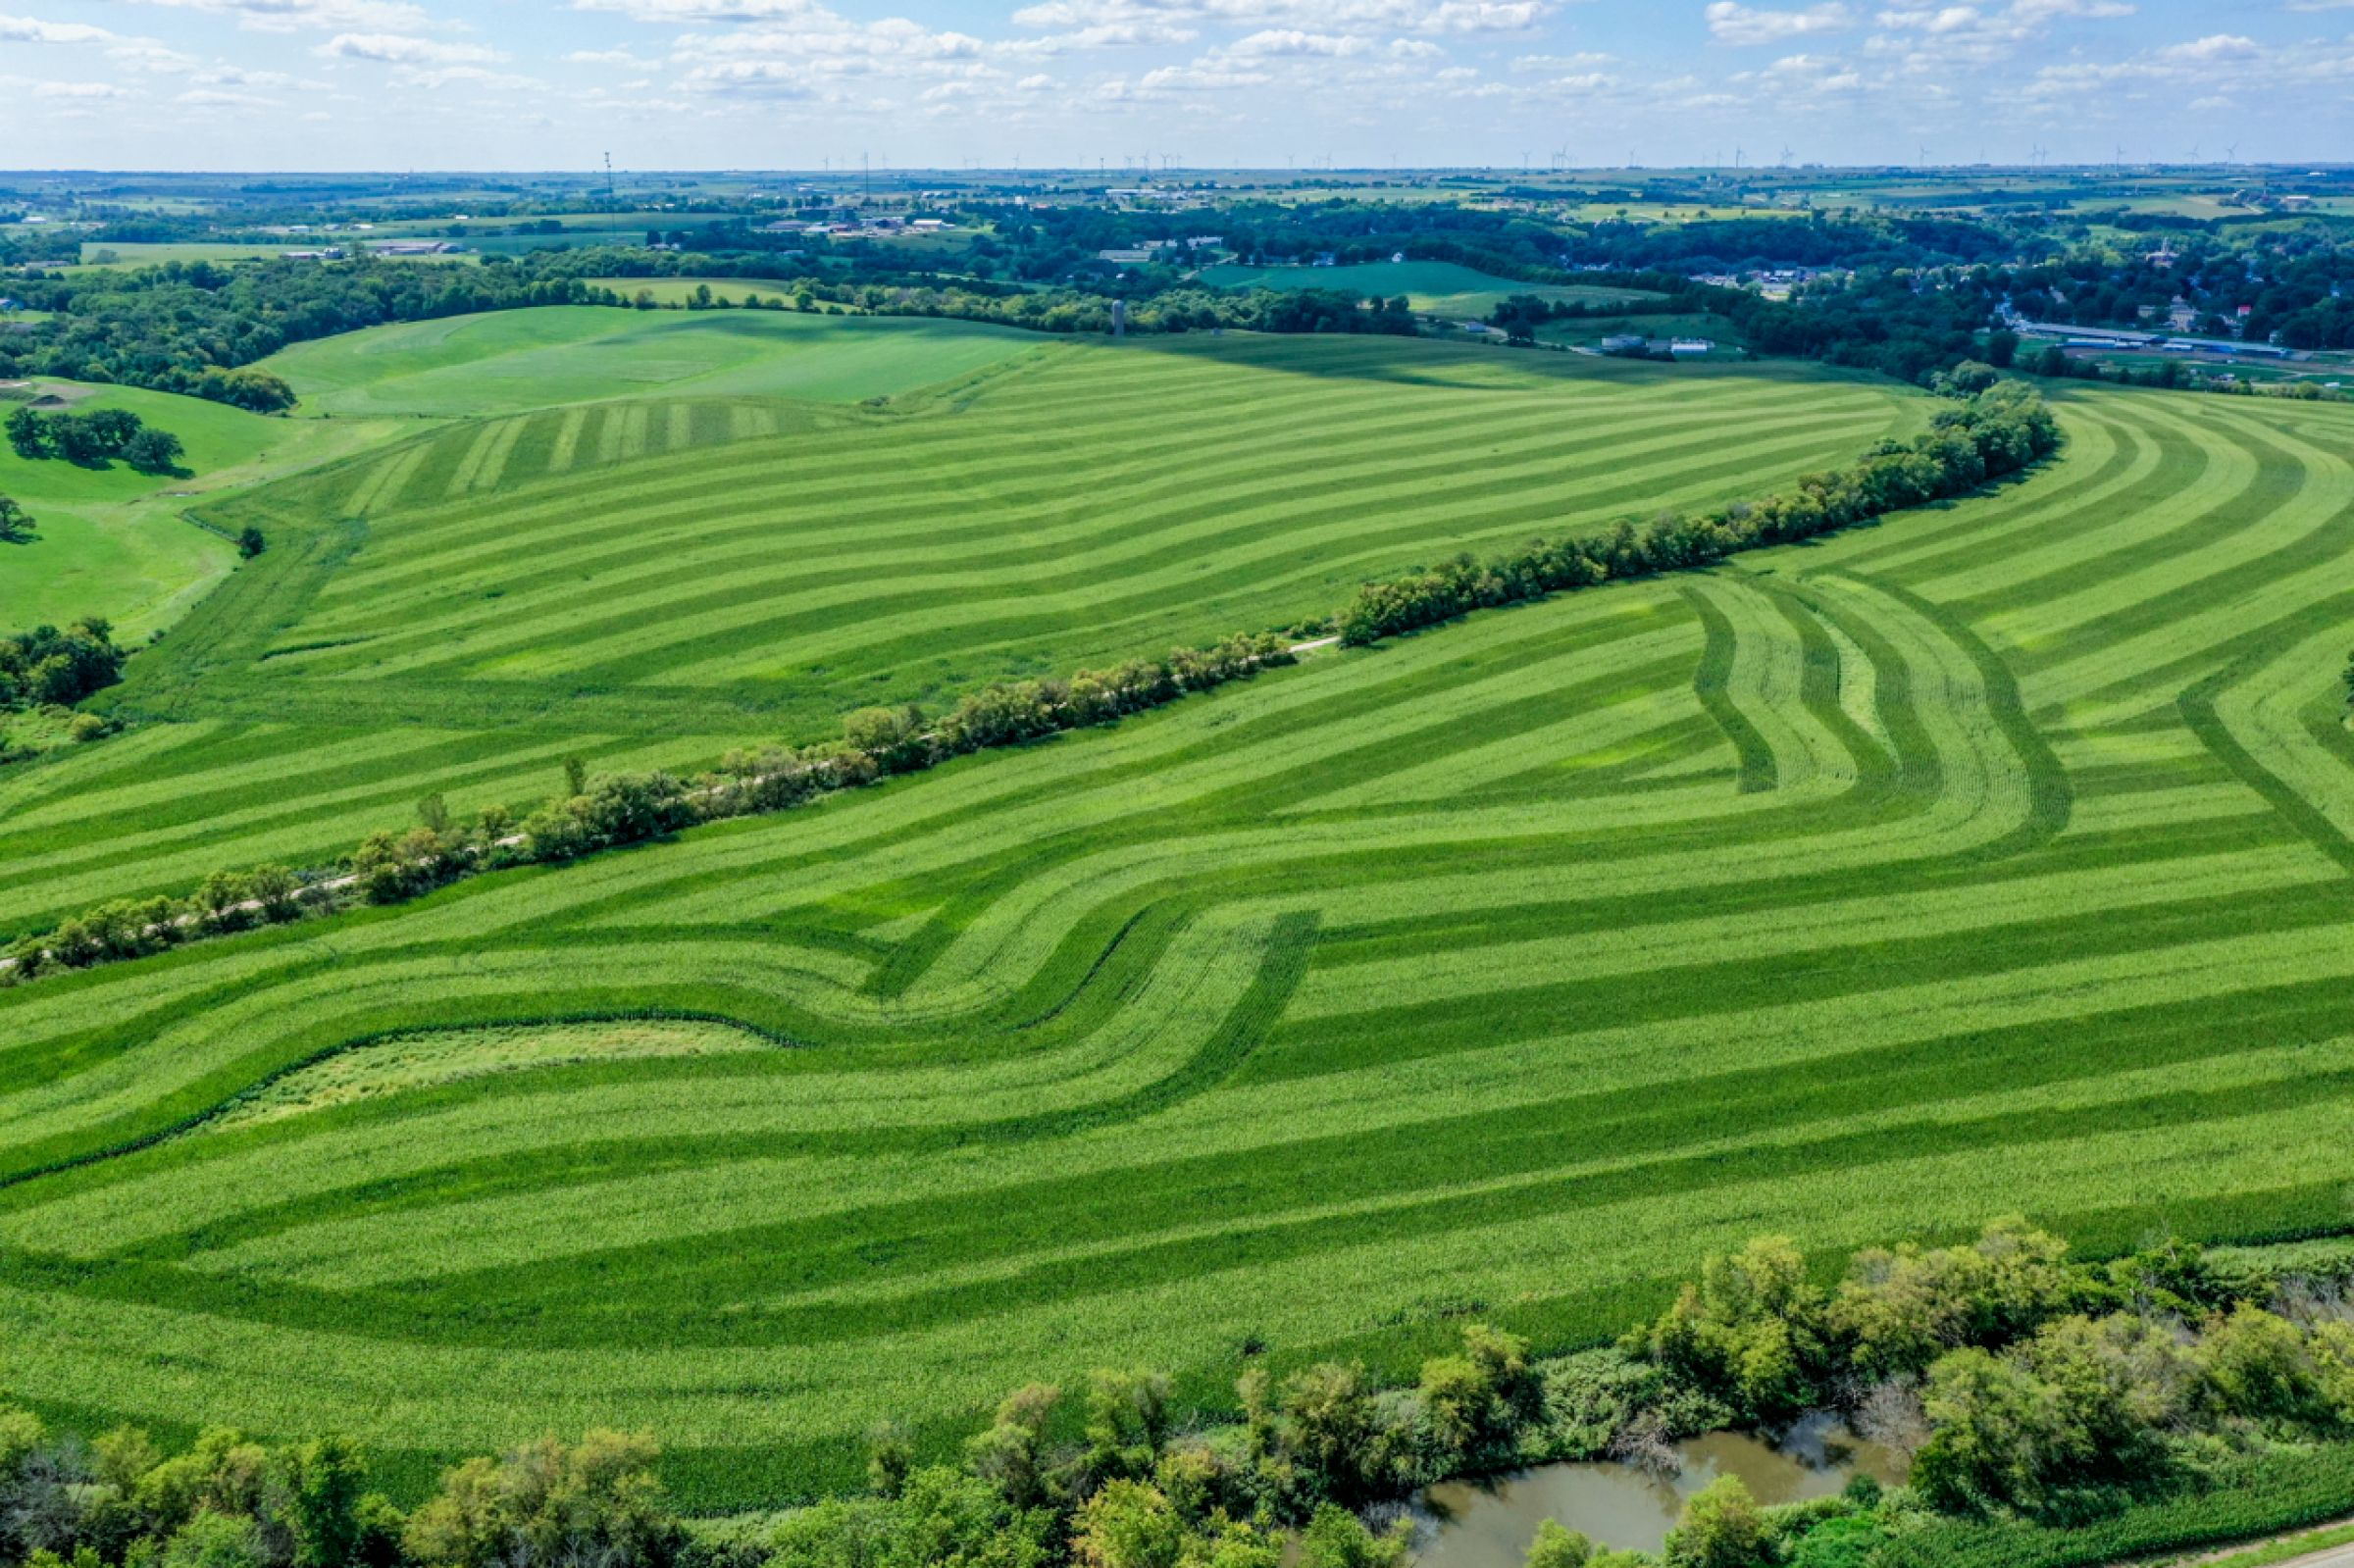 land-lafayette-county-wisconsin-120-acres-listing-number-15729-8-2021-09-03-204843.jpg